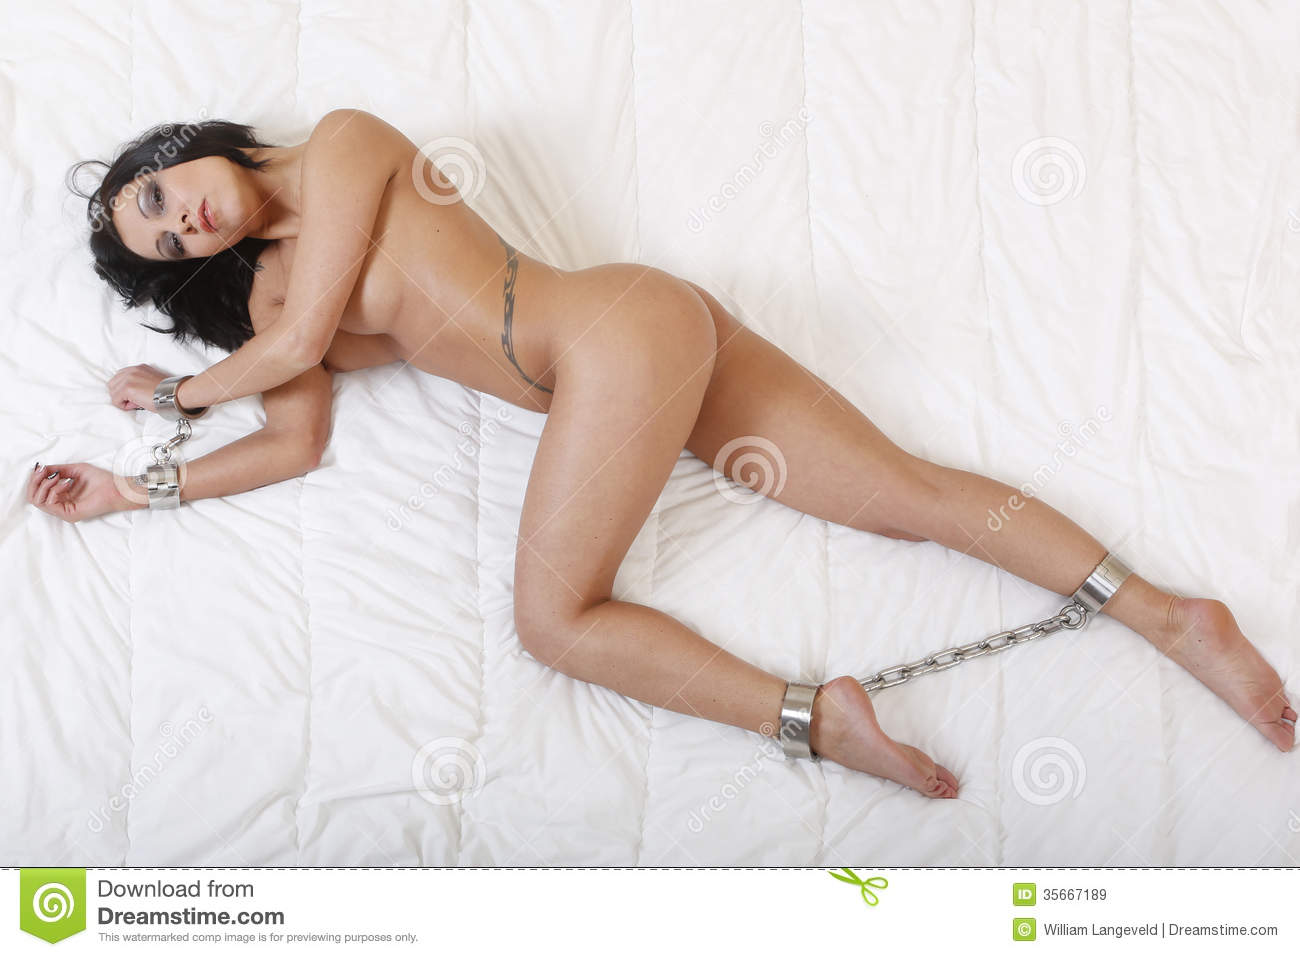 Have thought hot nude girls inhandcuffs something is